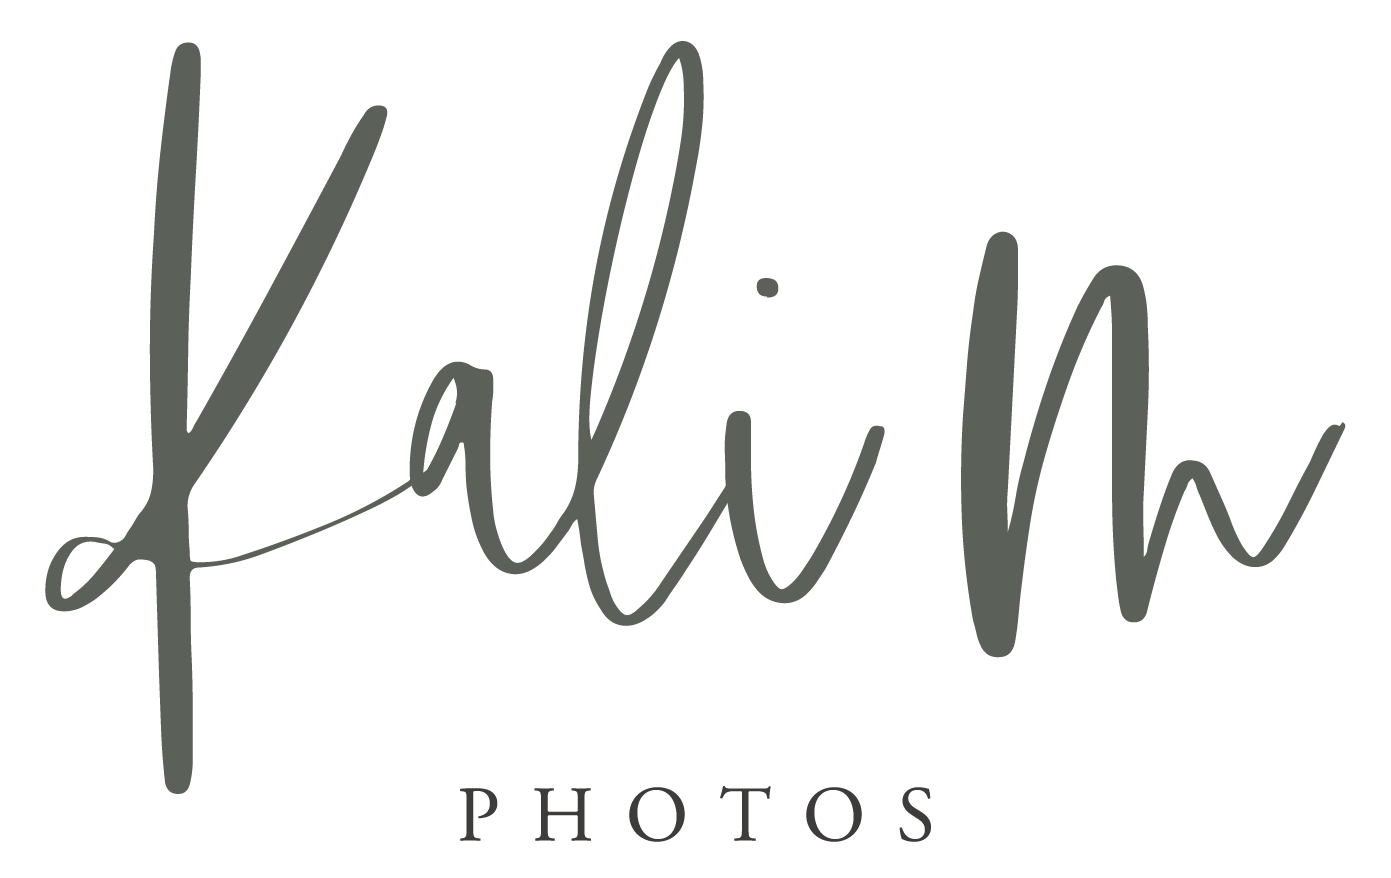 Phoenix Arizona Wedding Photographer - Kali M Photos